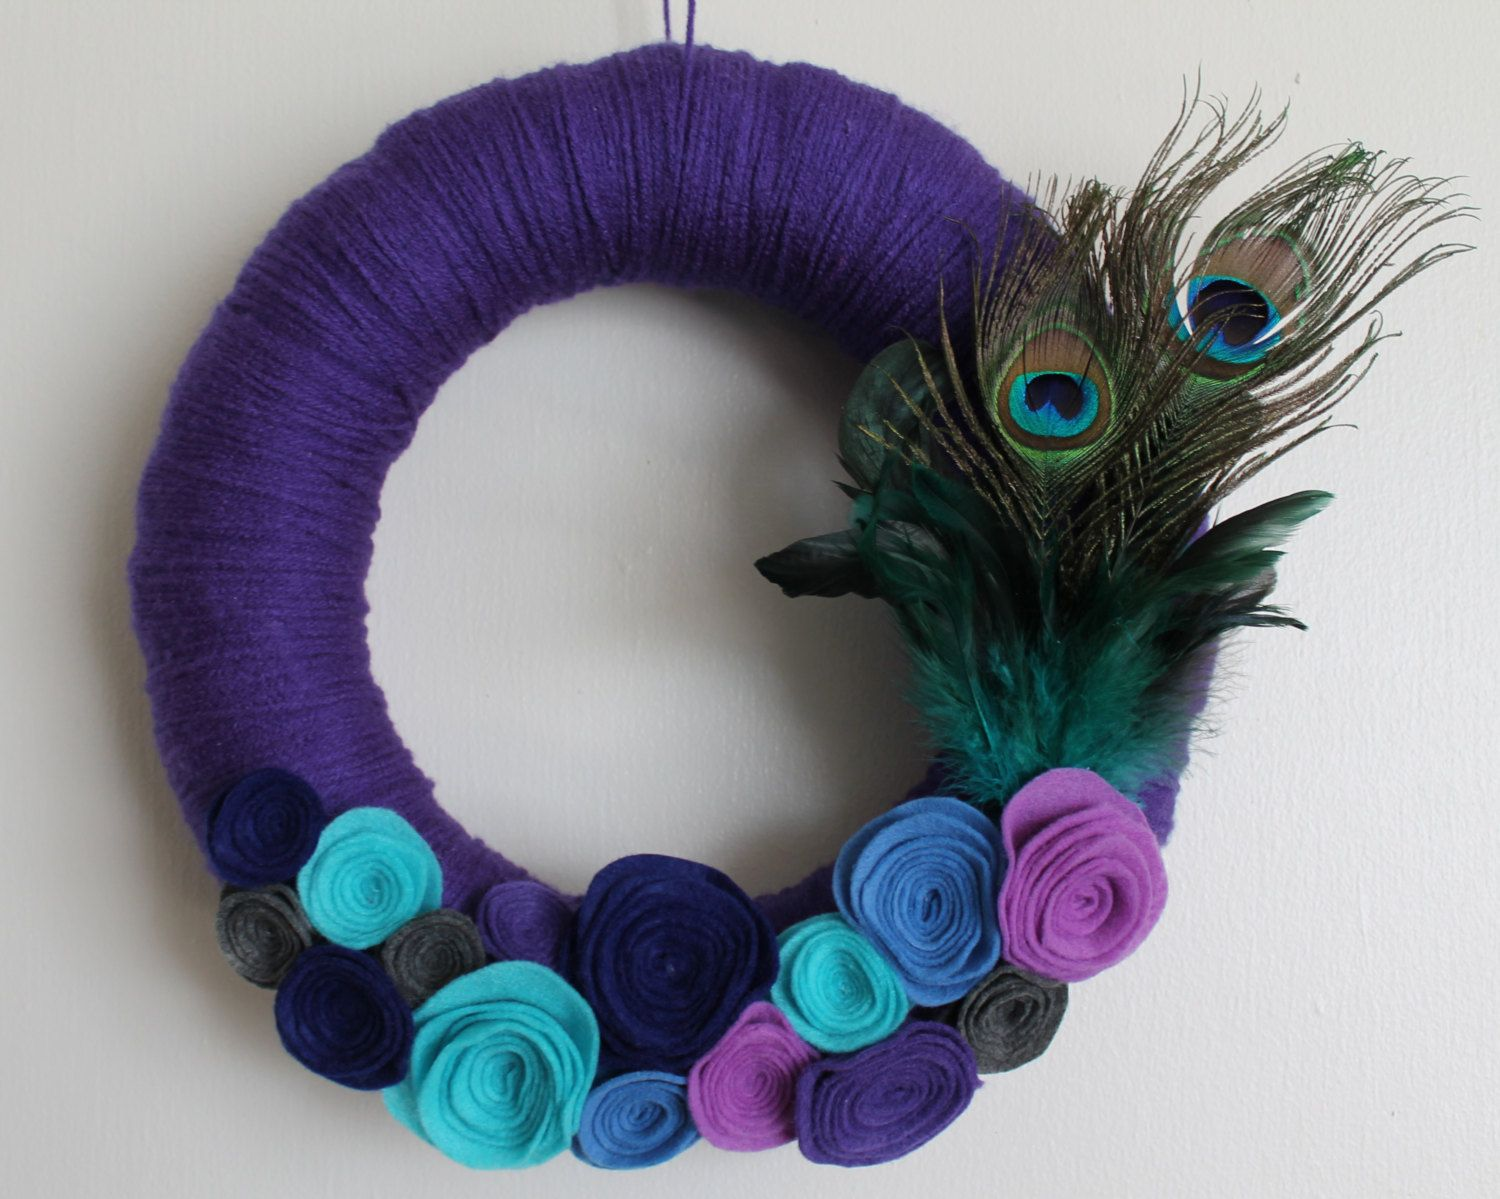 12 inch yarn wreath with peacock feathers and handmade rosettes. via Etsy.